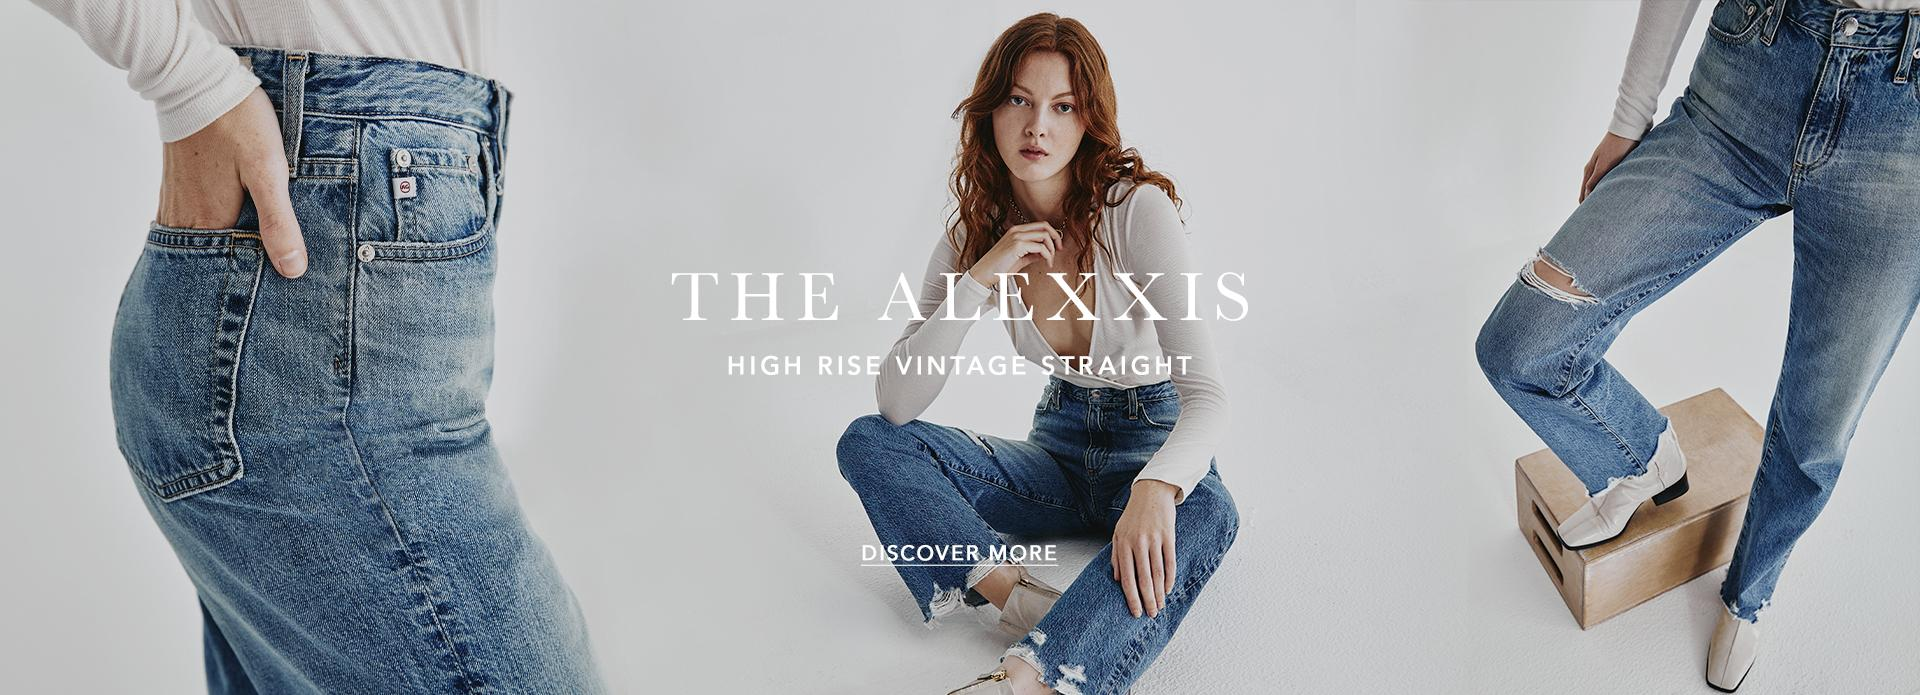 Discover More bout The Alexxis high rise vintage straight fit for women